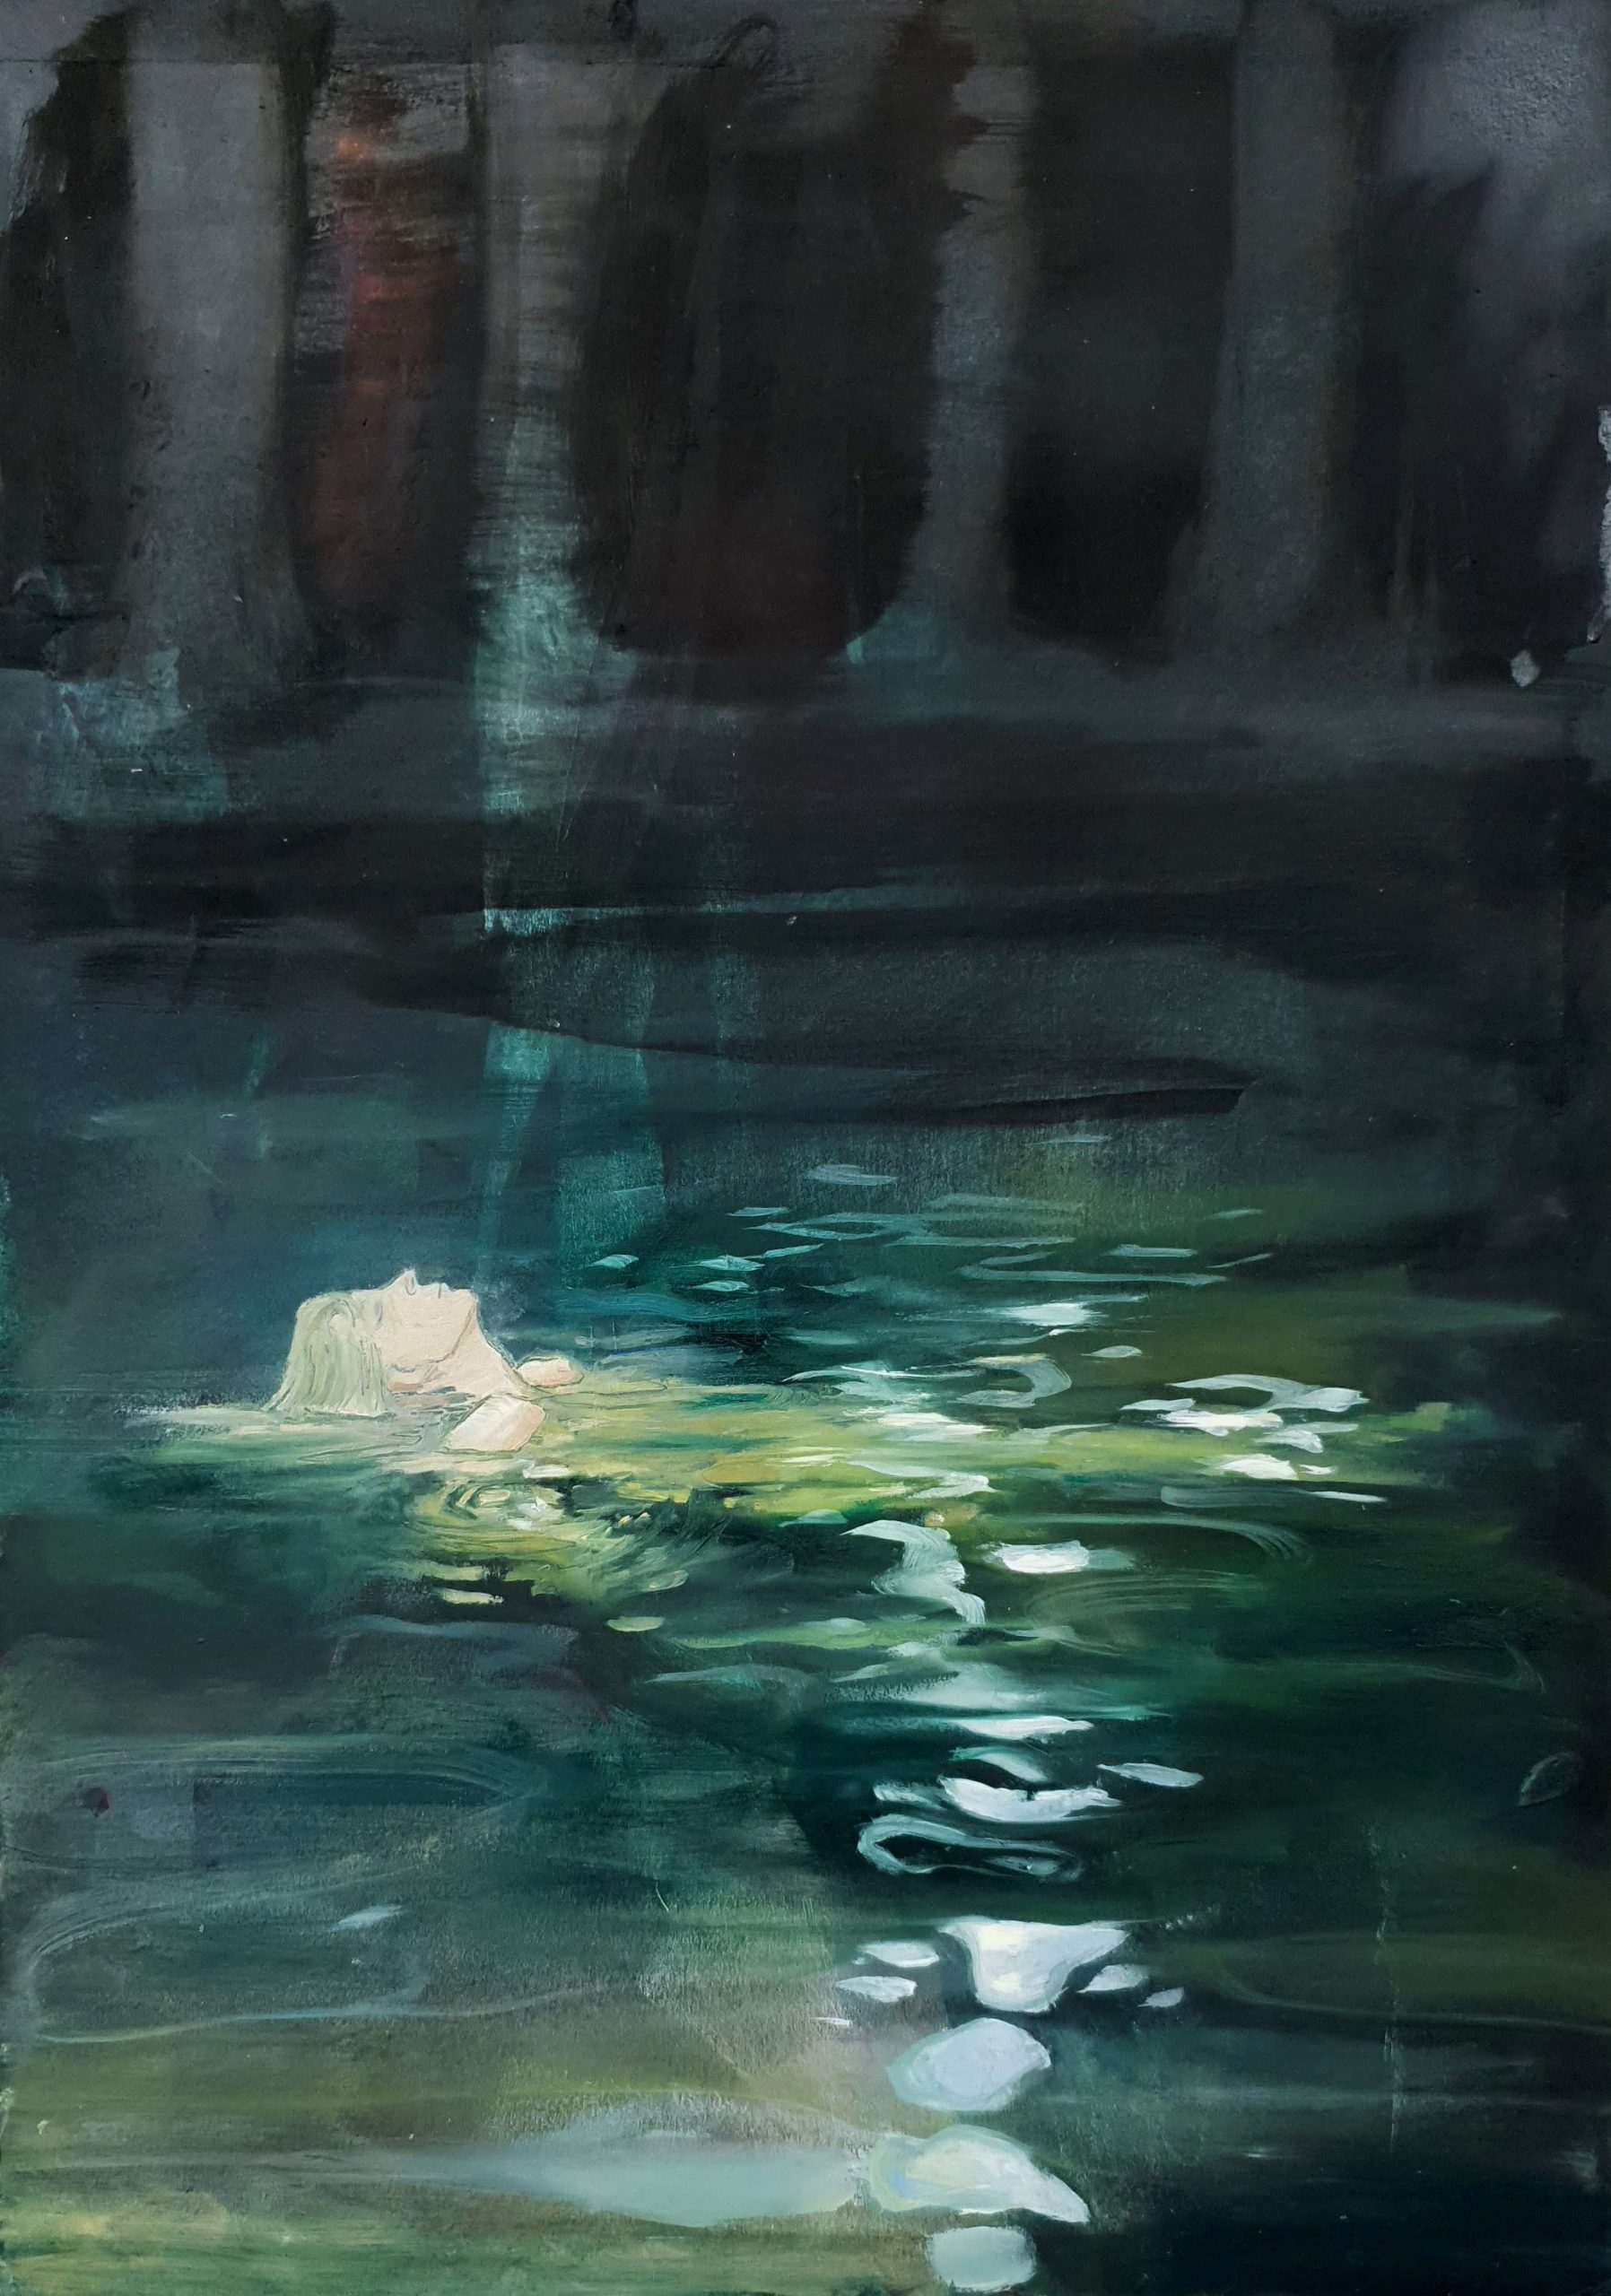 Pond by Sarah Hardy - artist